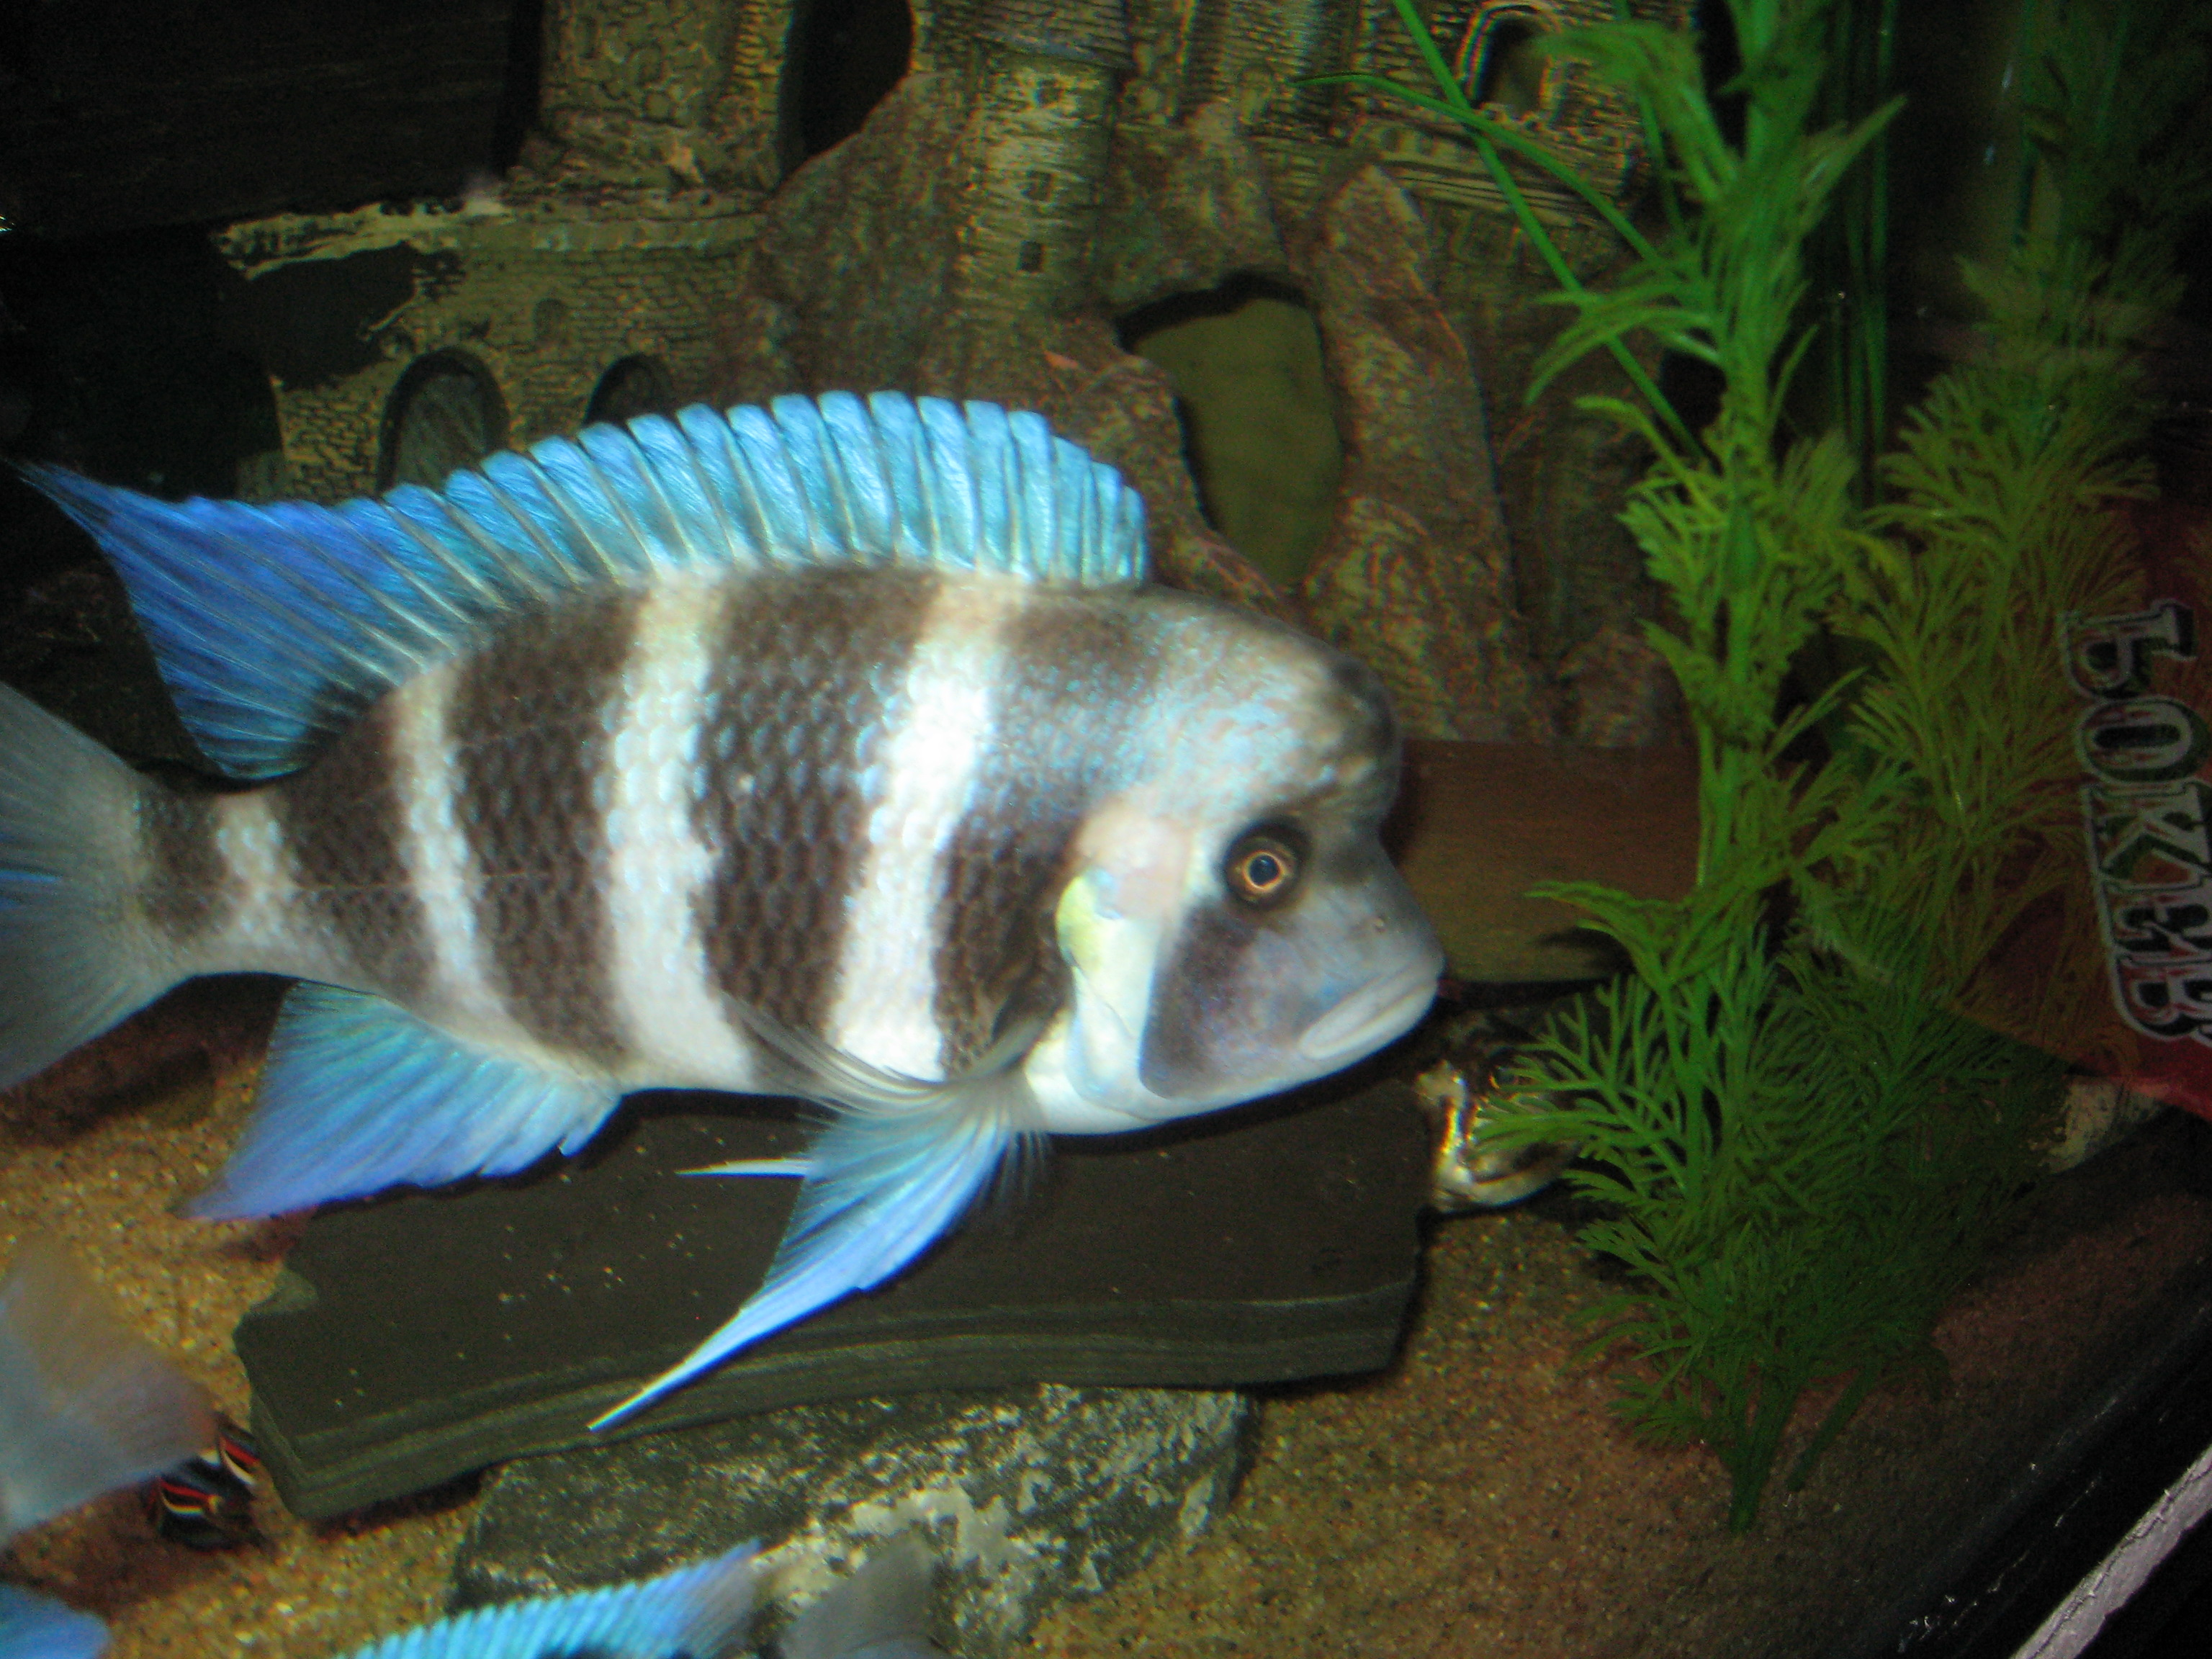 Baby Frontosa Cichlid cichlids.com: Male Fro...